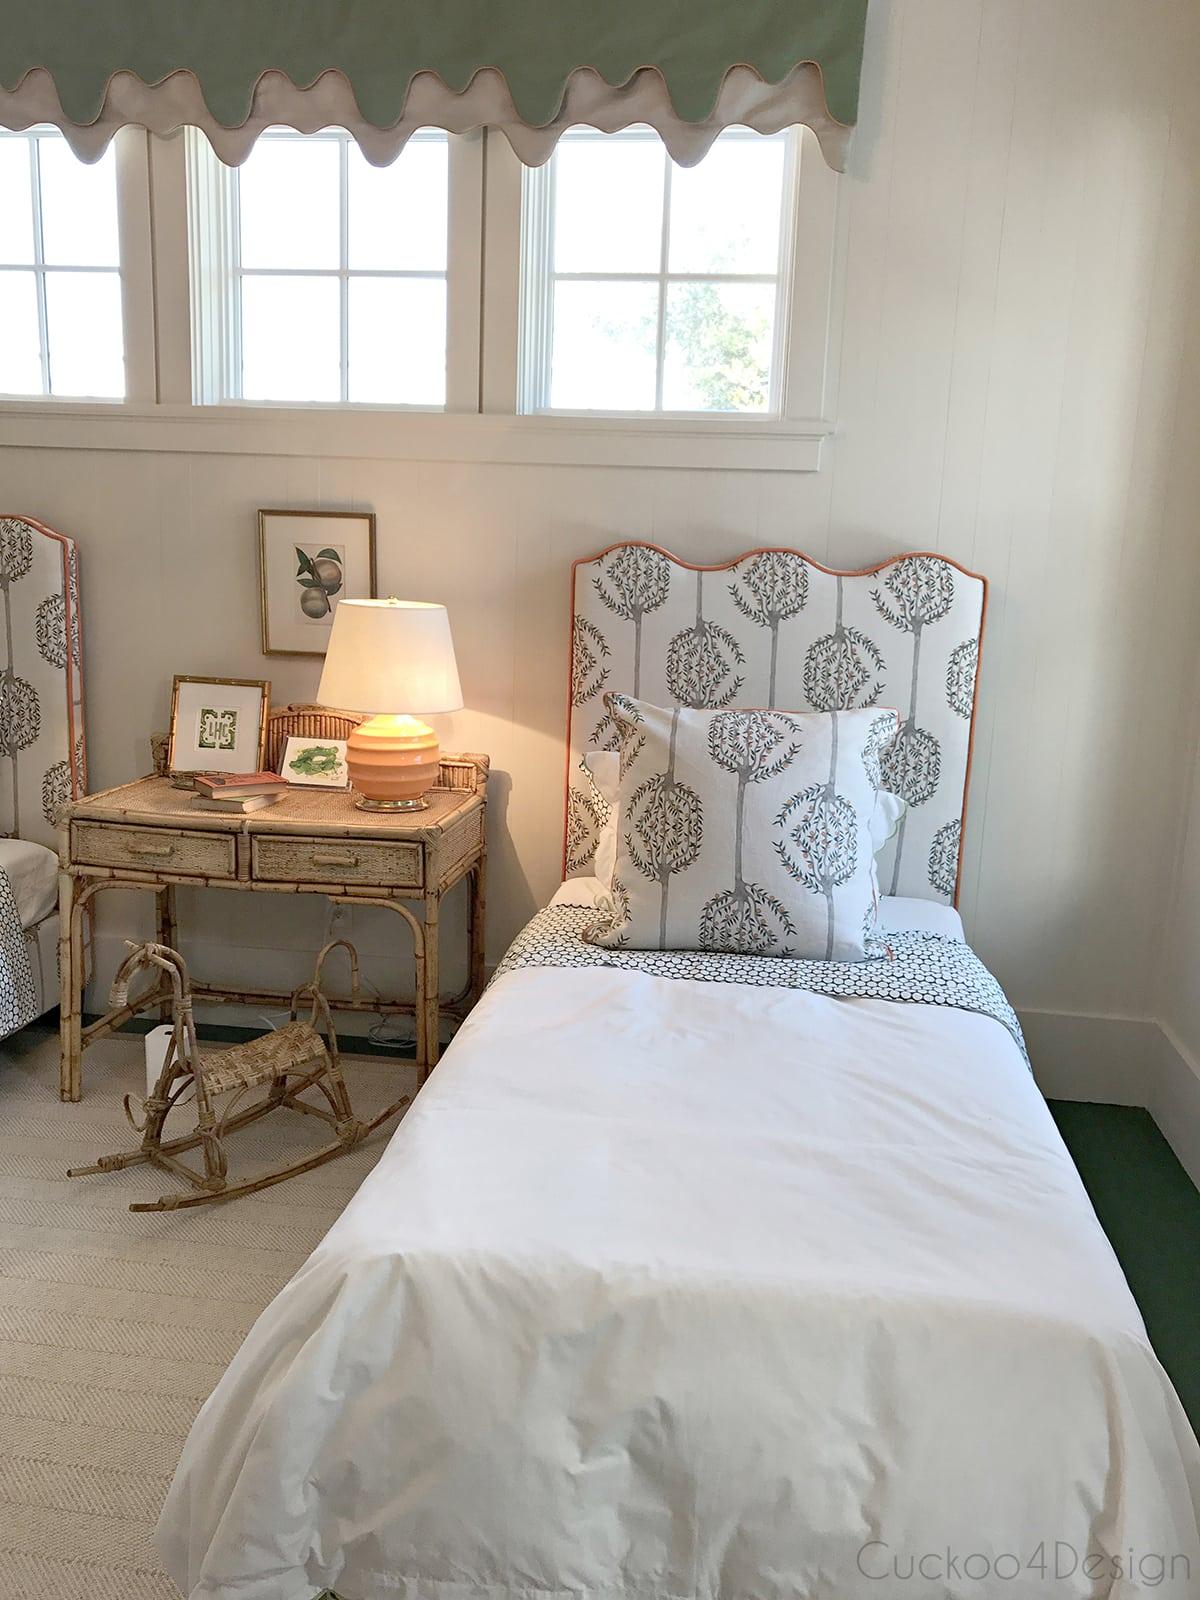 kids bedroom with upholstered headboard, orange trim and vintage wicker furniture